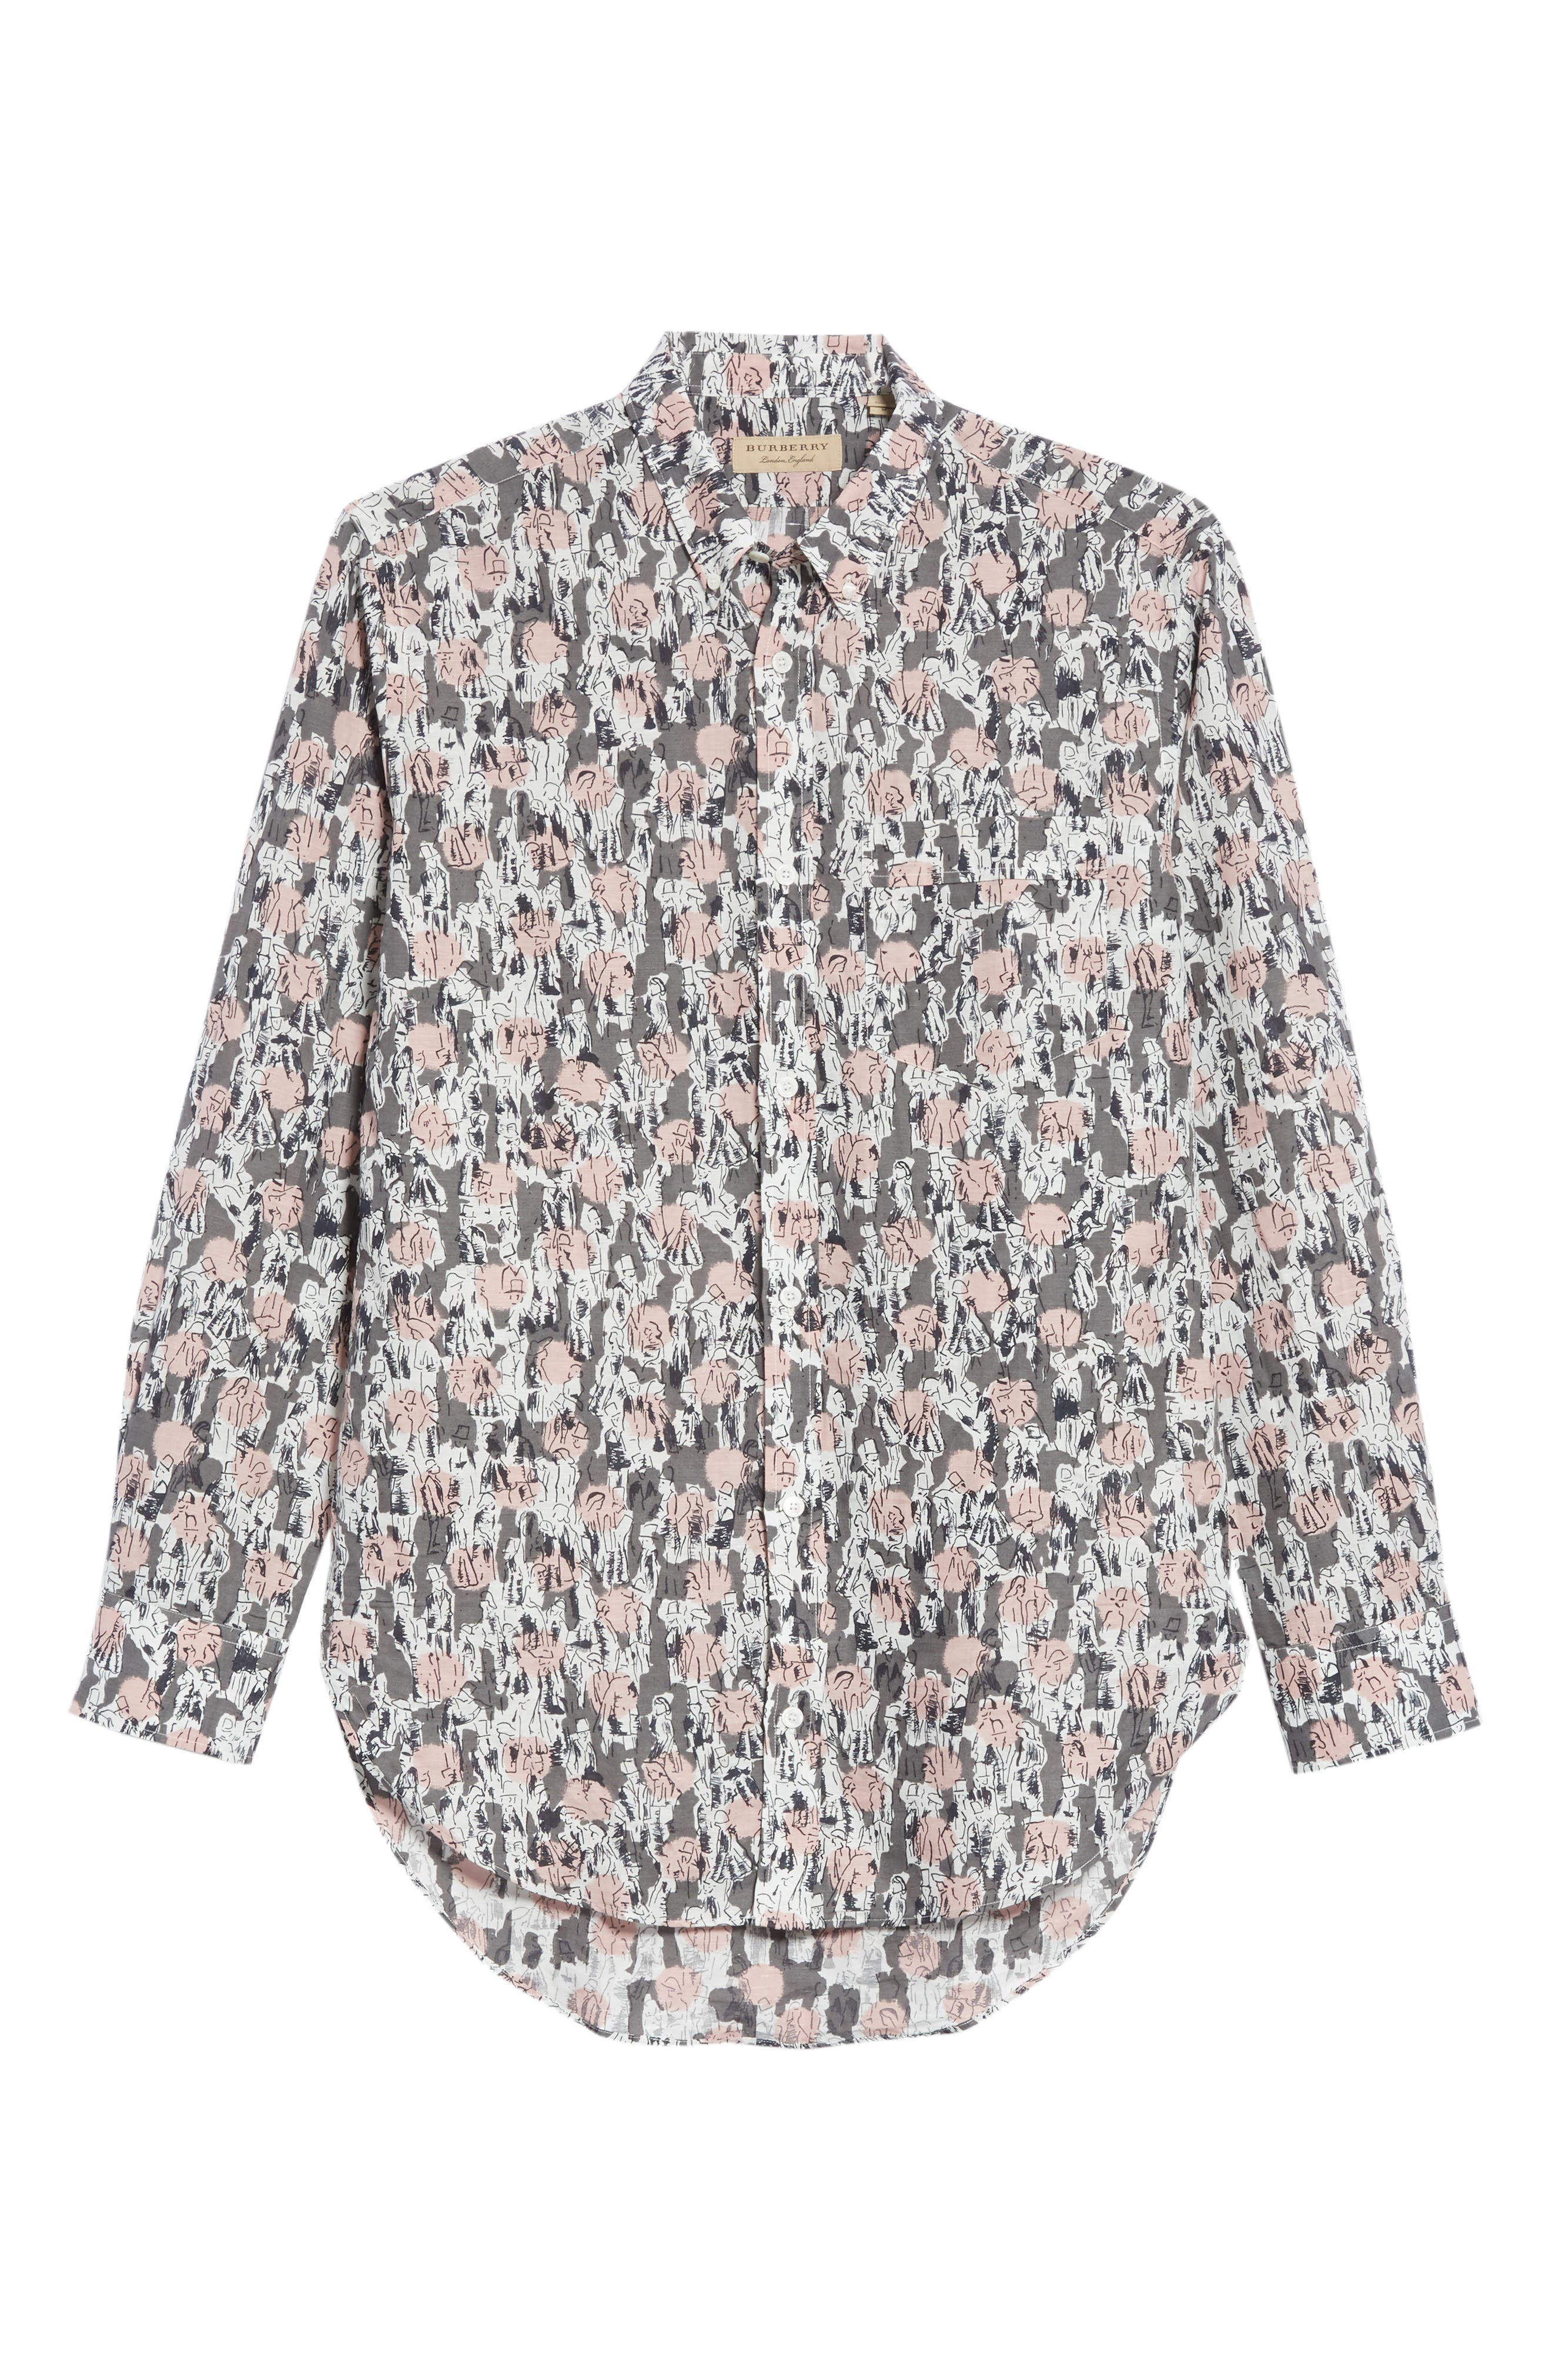 Strenton Print Shirt,                             Alternate thumbnail 6, color,                             032